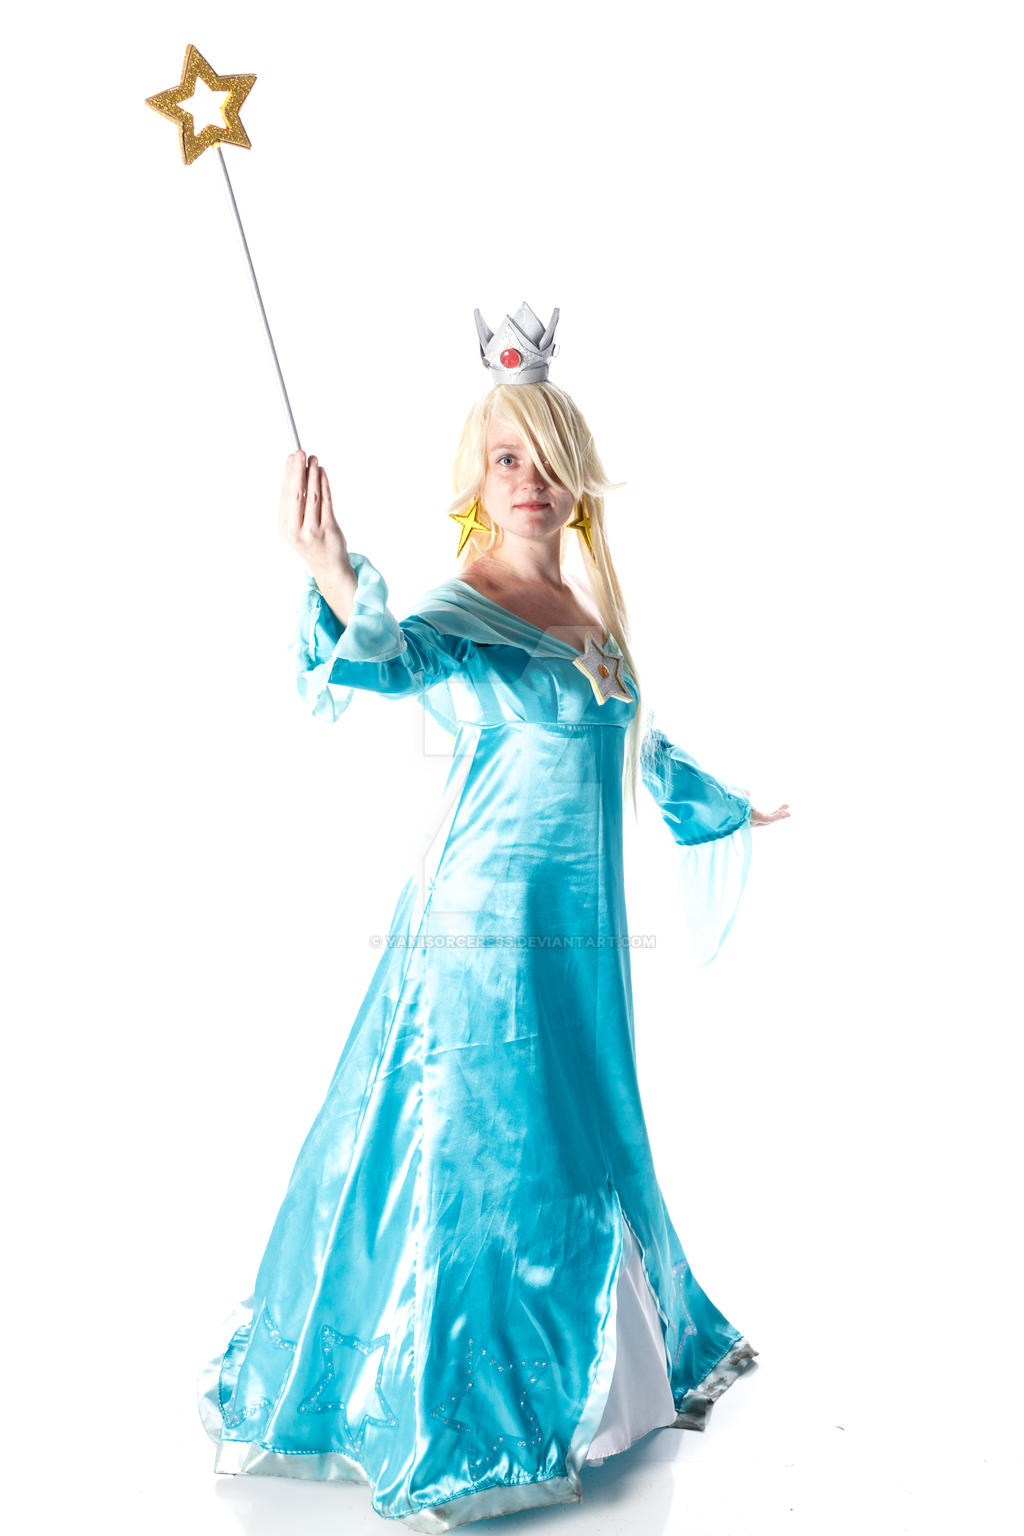 Rosalina Cosplay - Super Mario Galaxy/Smash Bros. by ...